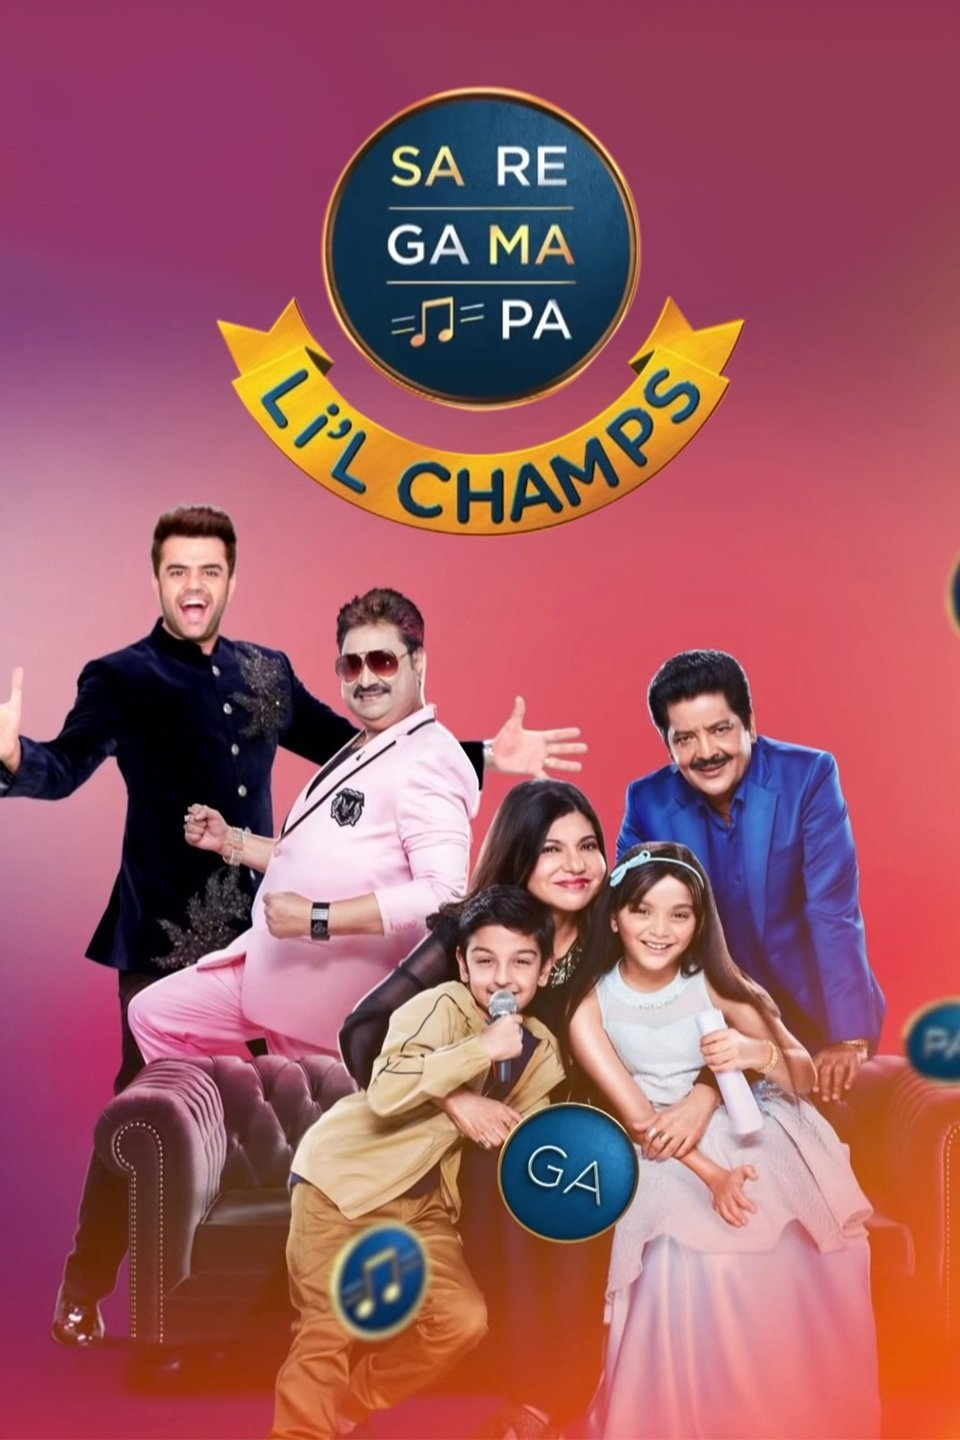 Kapil Sharma India Best Dancer Sa Re Ga Ma Pa Lil Champs September 3rd October 2020 All DL